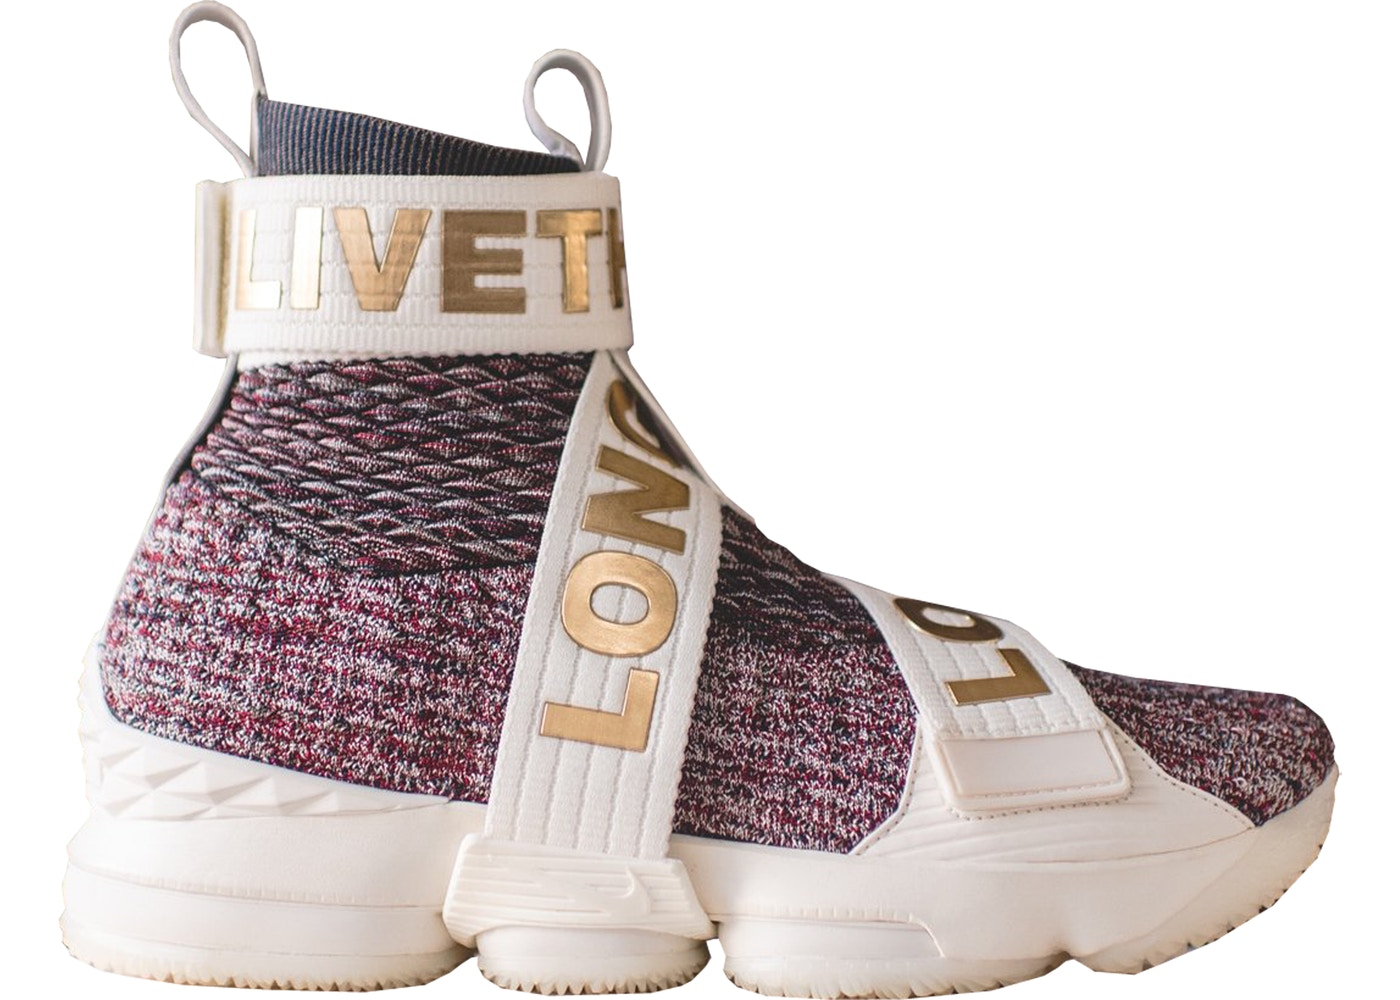 official photos c3157 a6843 LeBron 15 Lifestyle KITH Stained Glass